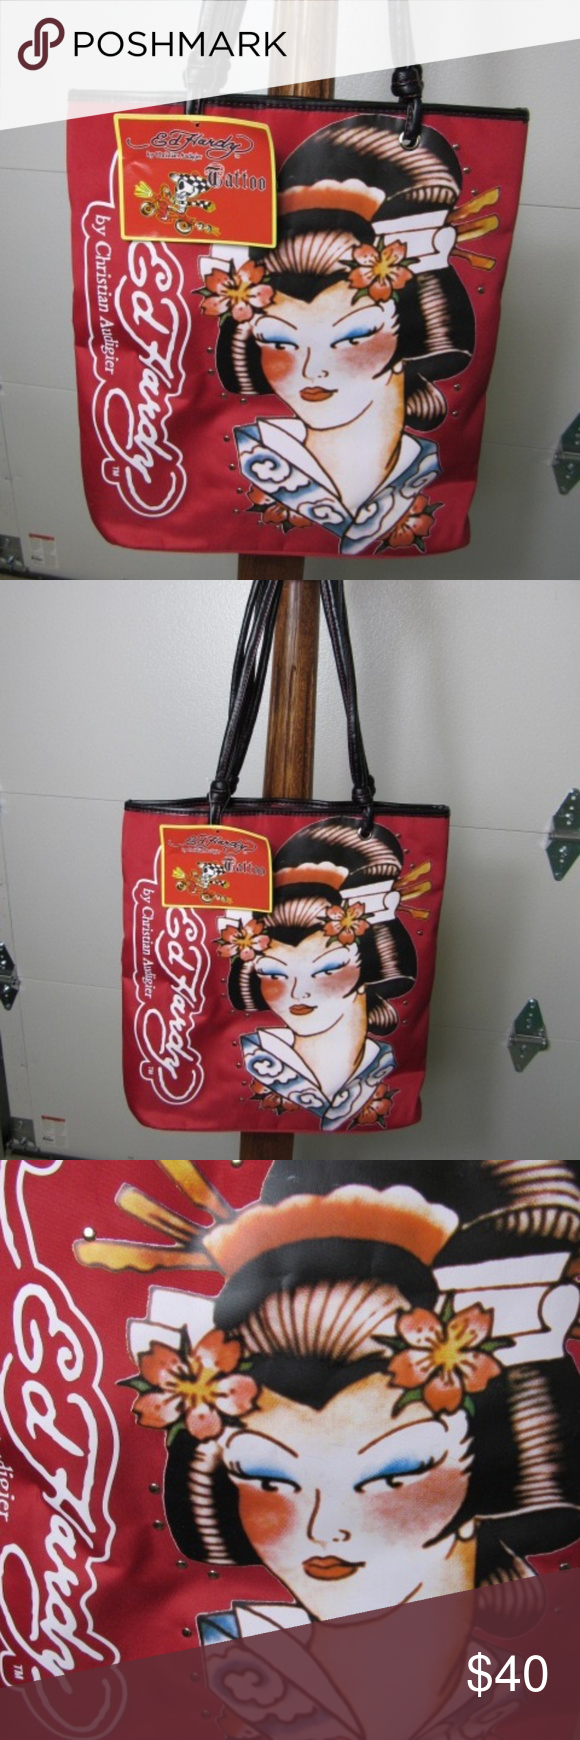 353c9ece927 Ed Hardy Christian Audigier Geisha Tote New with tag. Measures  approximately 14